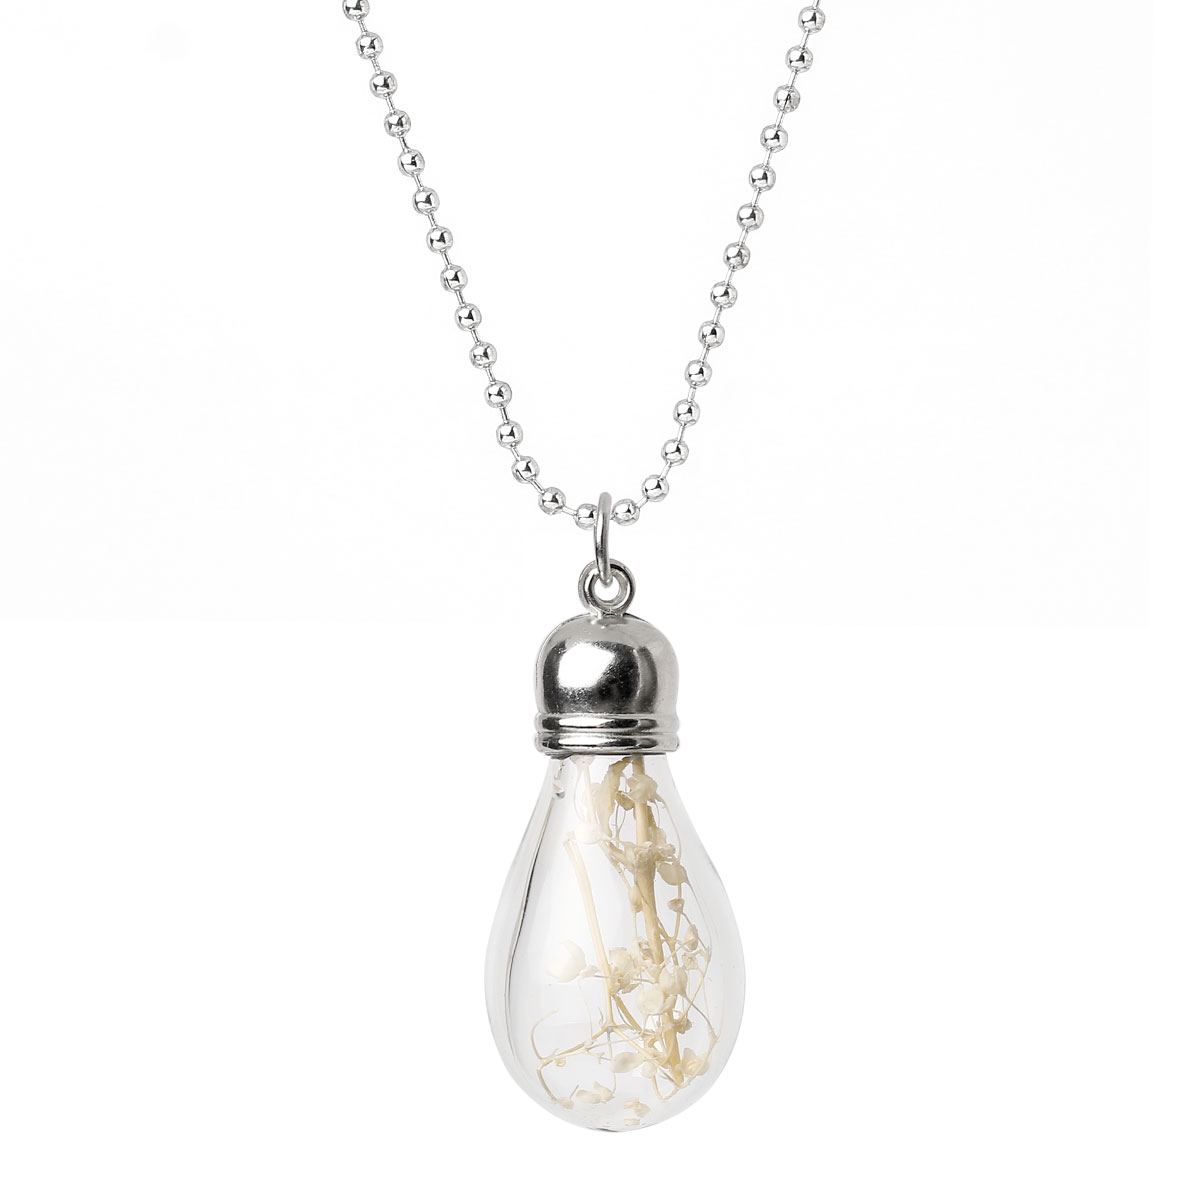 glass bottle necklace chain silver tone white flower